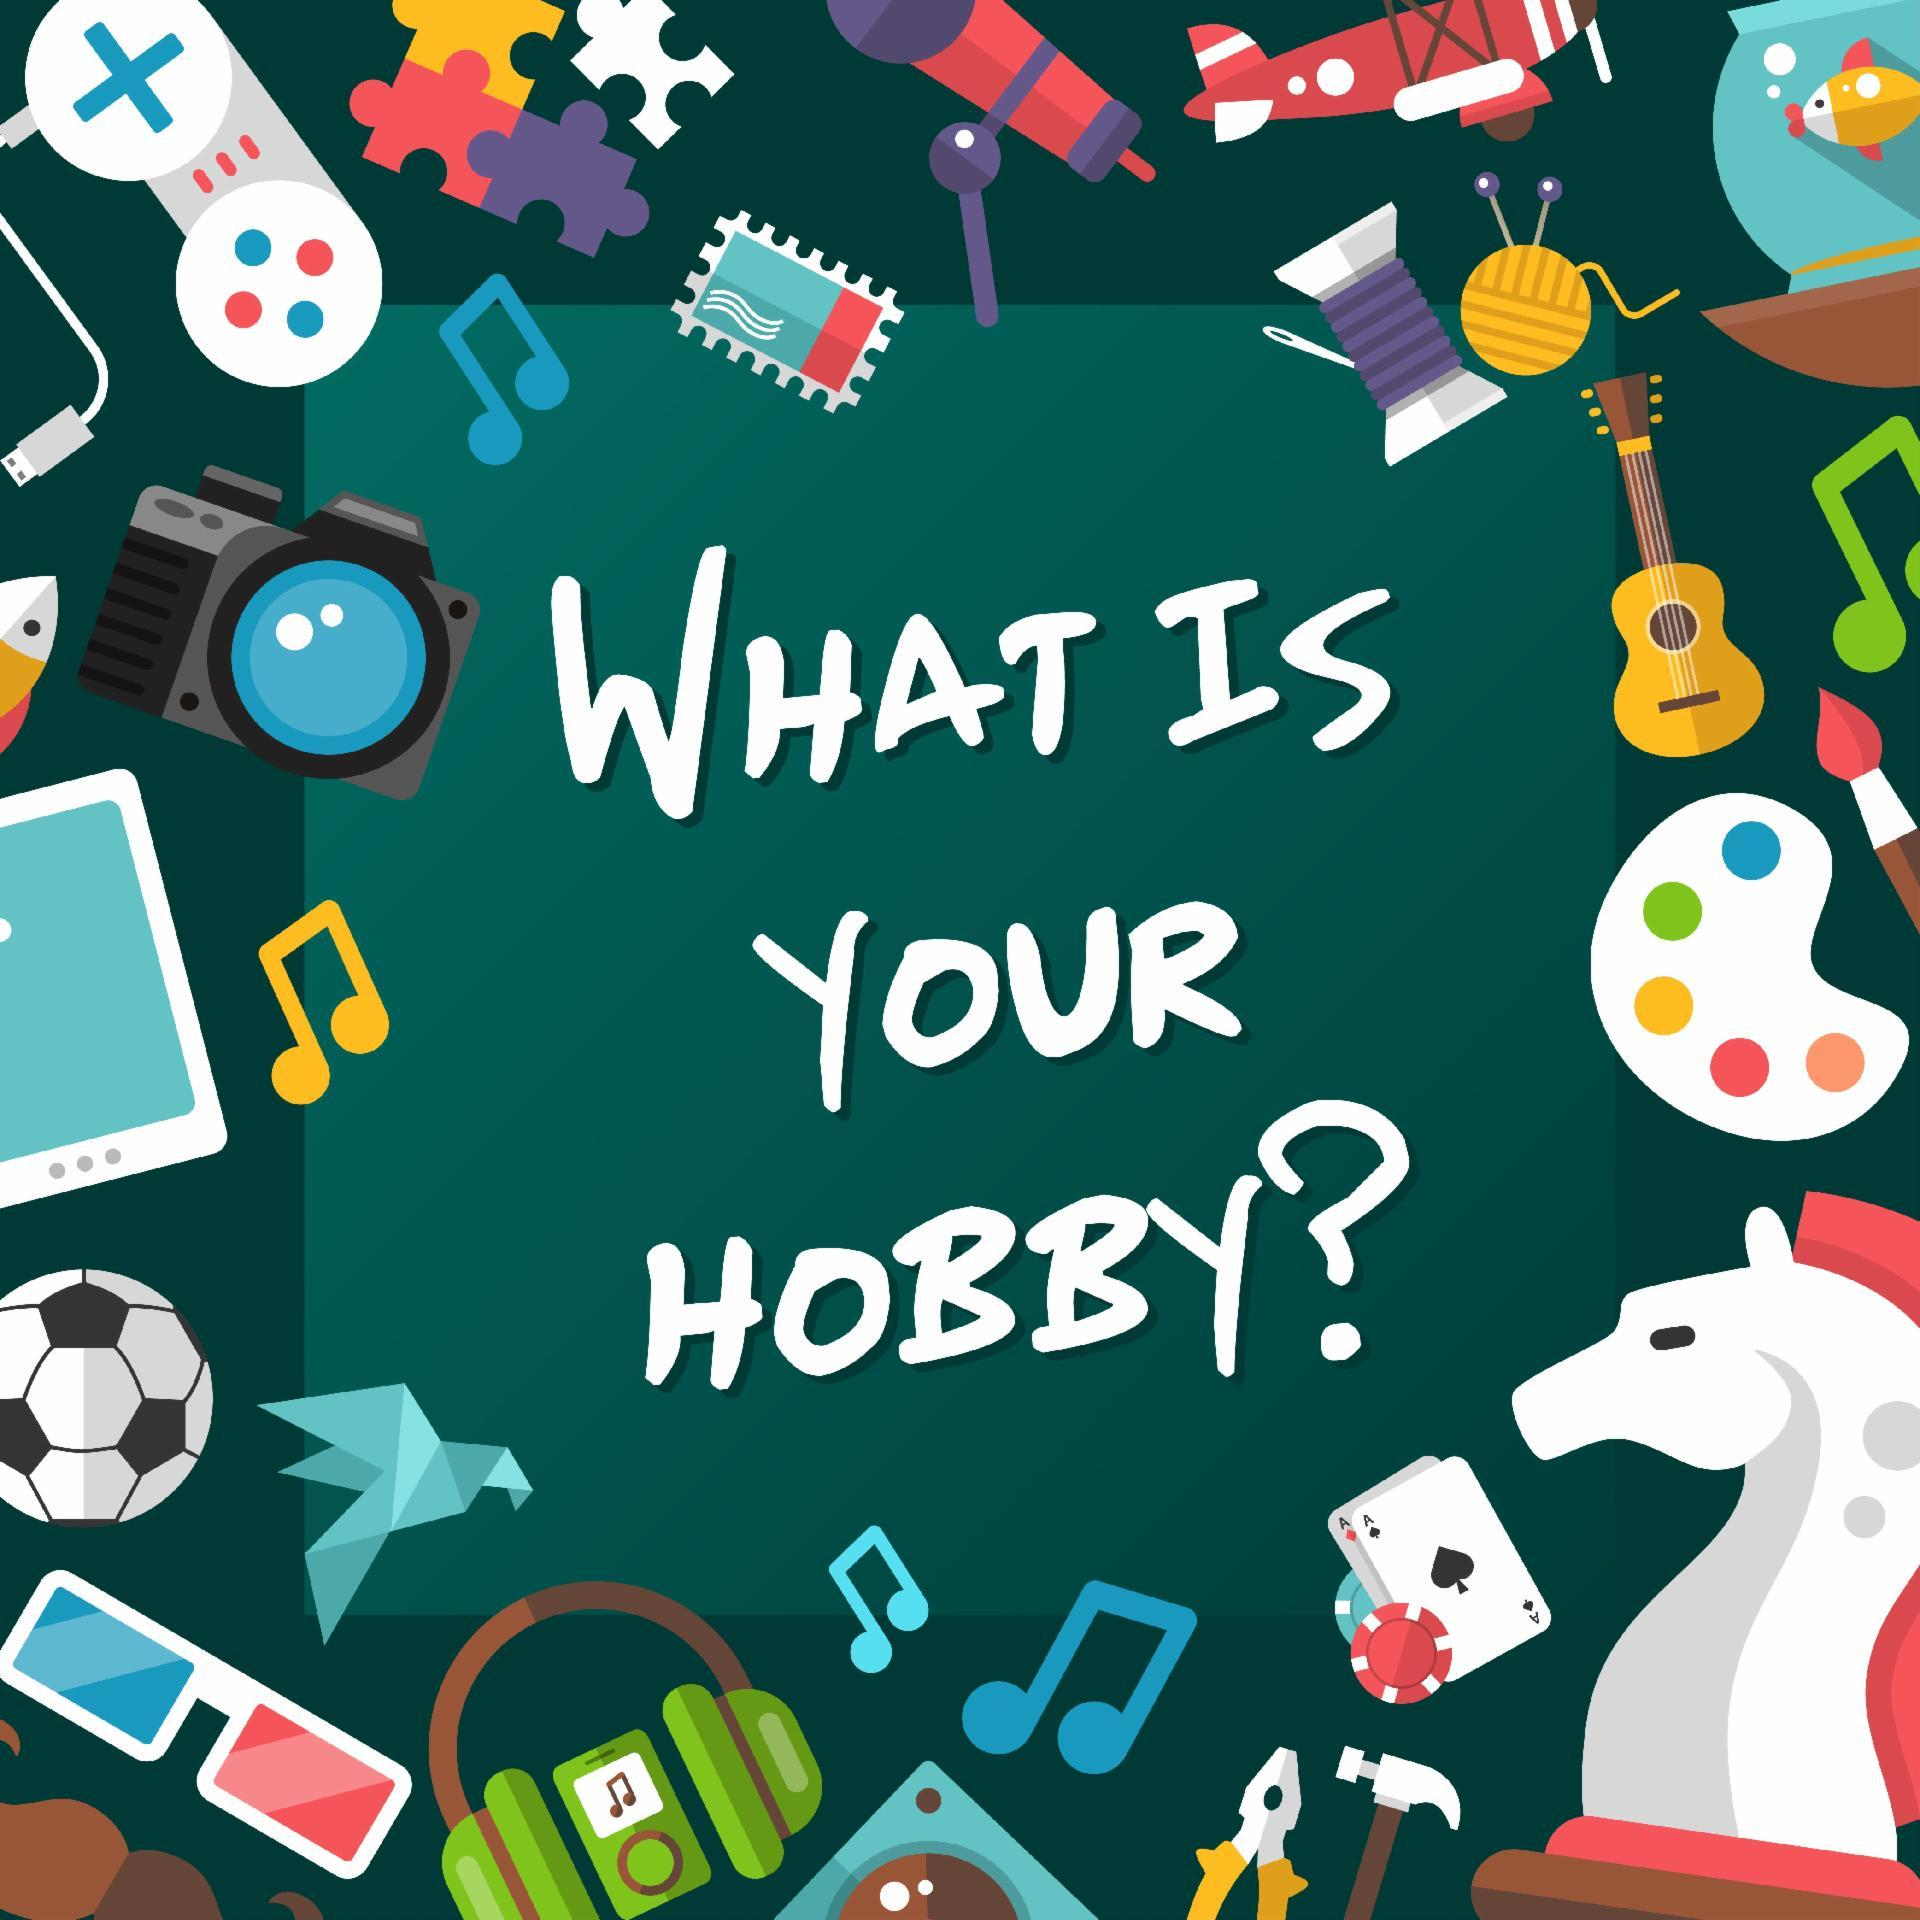 What are you favorite hobbies